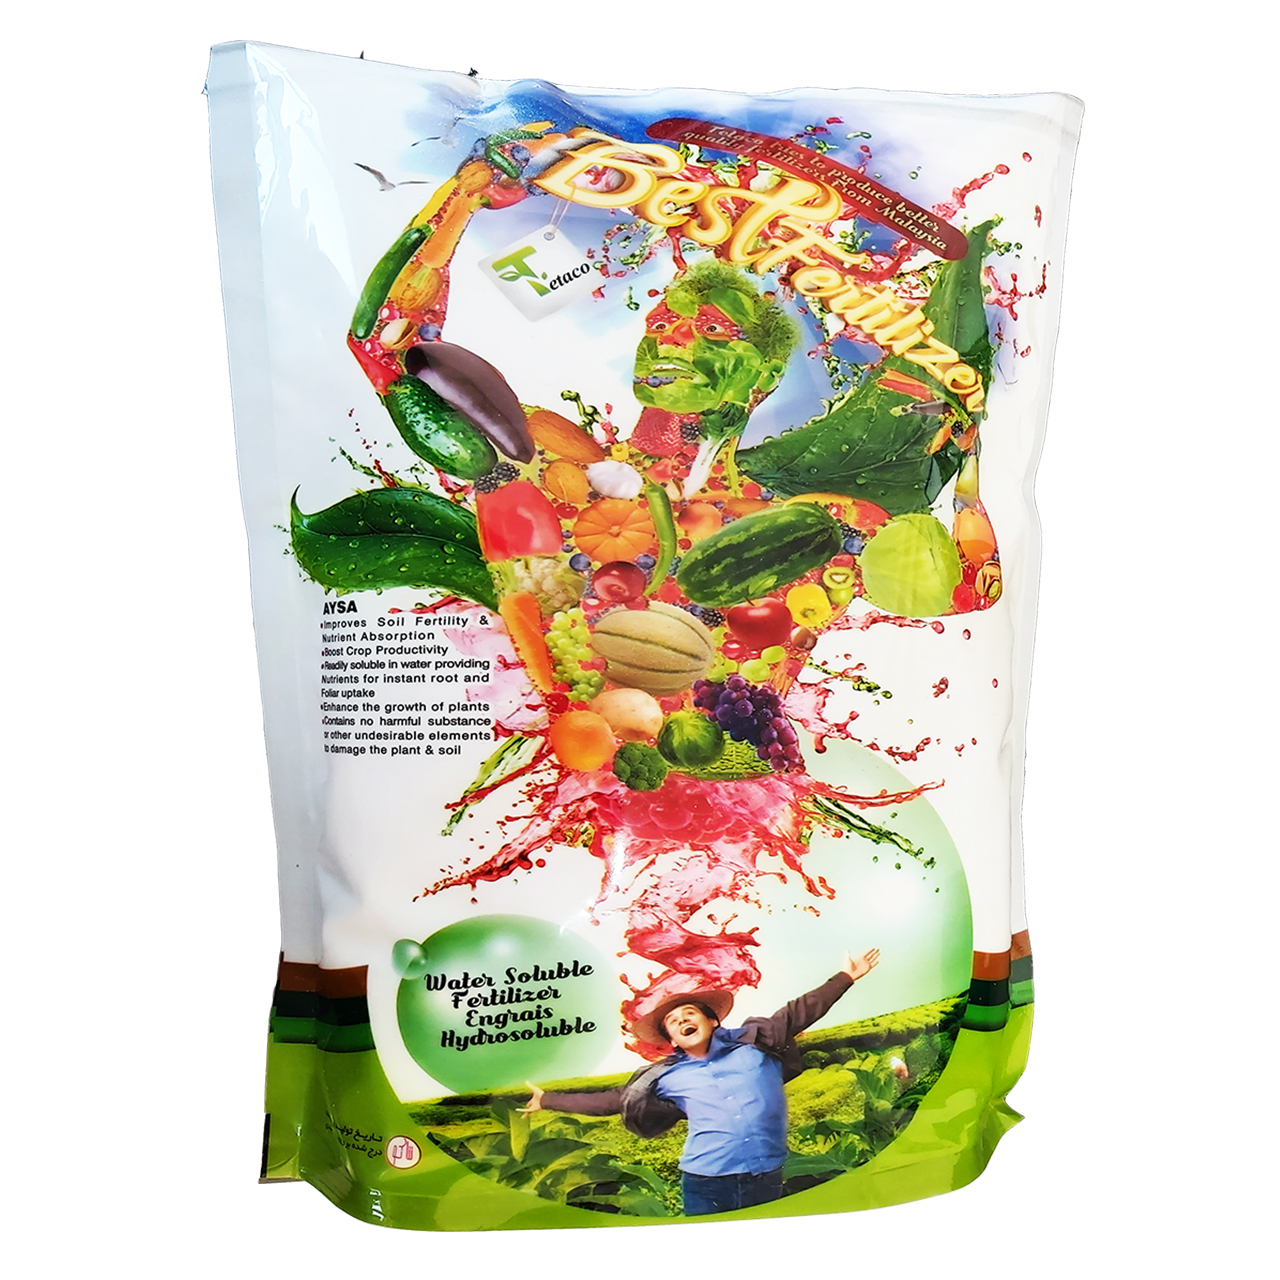 image number  2 products  Watermelon fertilizer AYSA weighs 1 kg